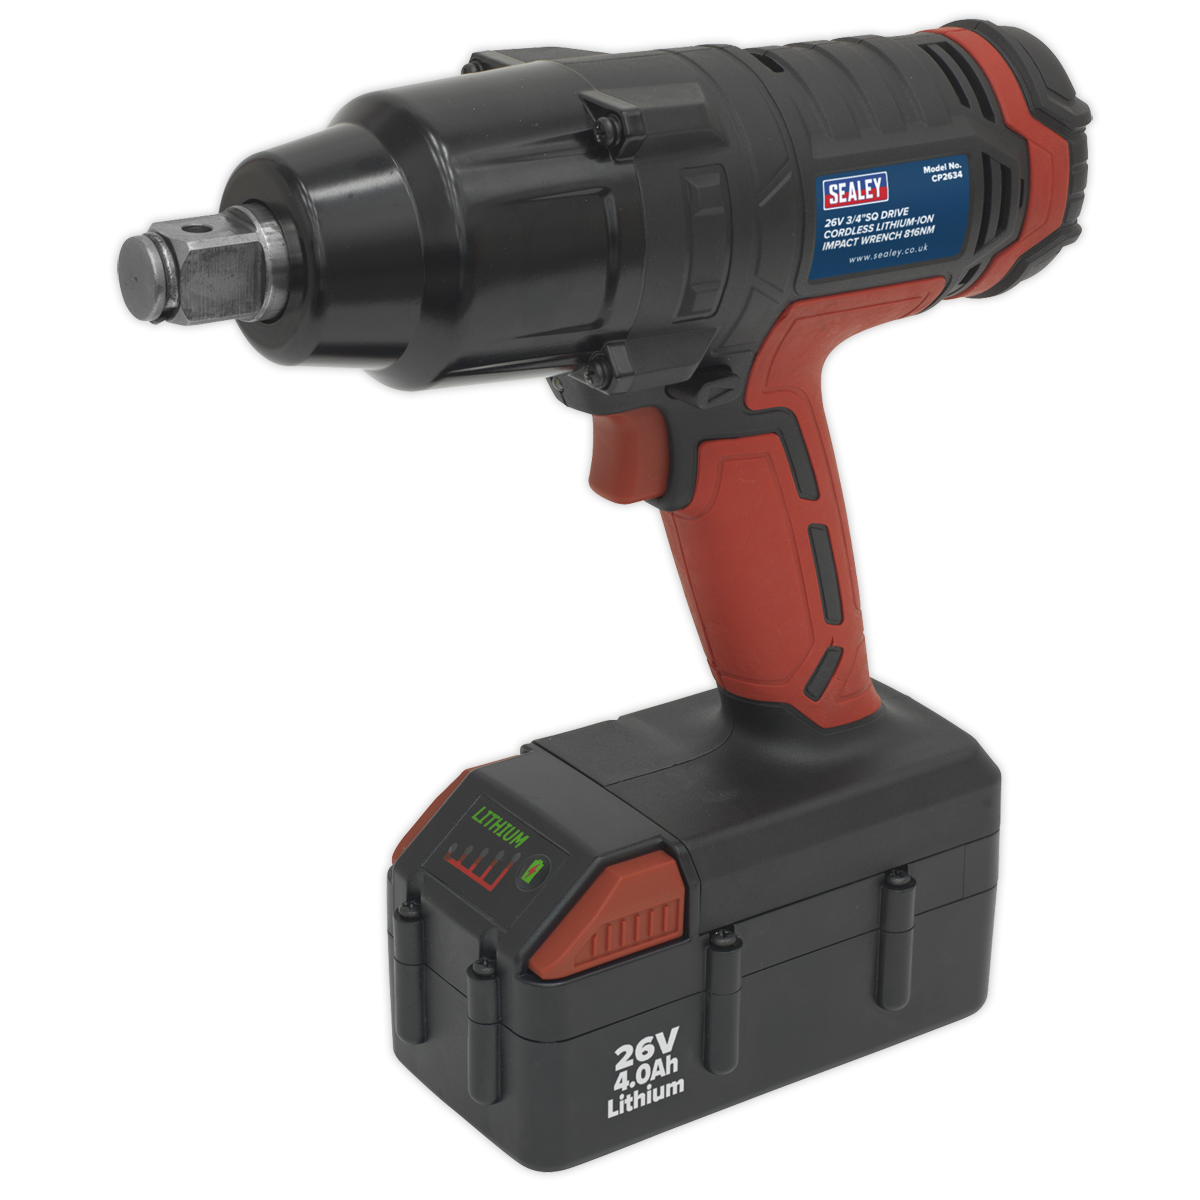 Cordless Impact Wrench 26V Lithium-ion 3/4